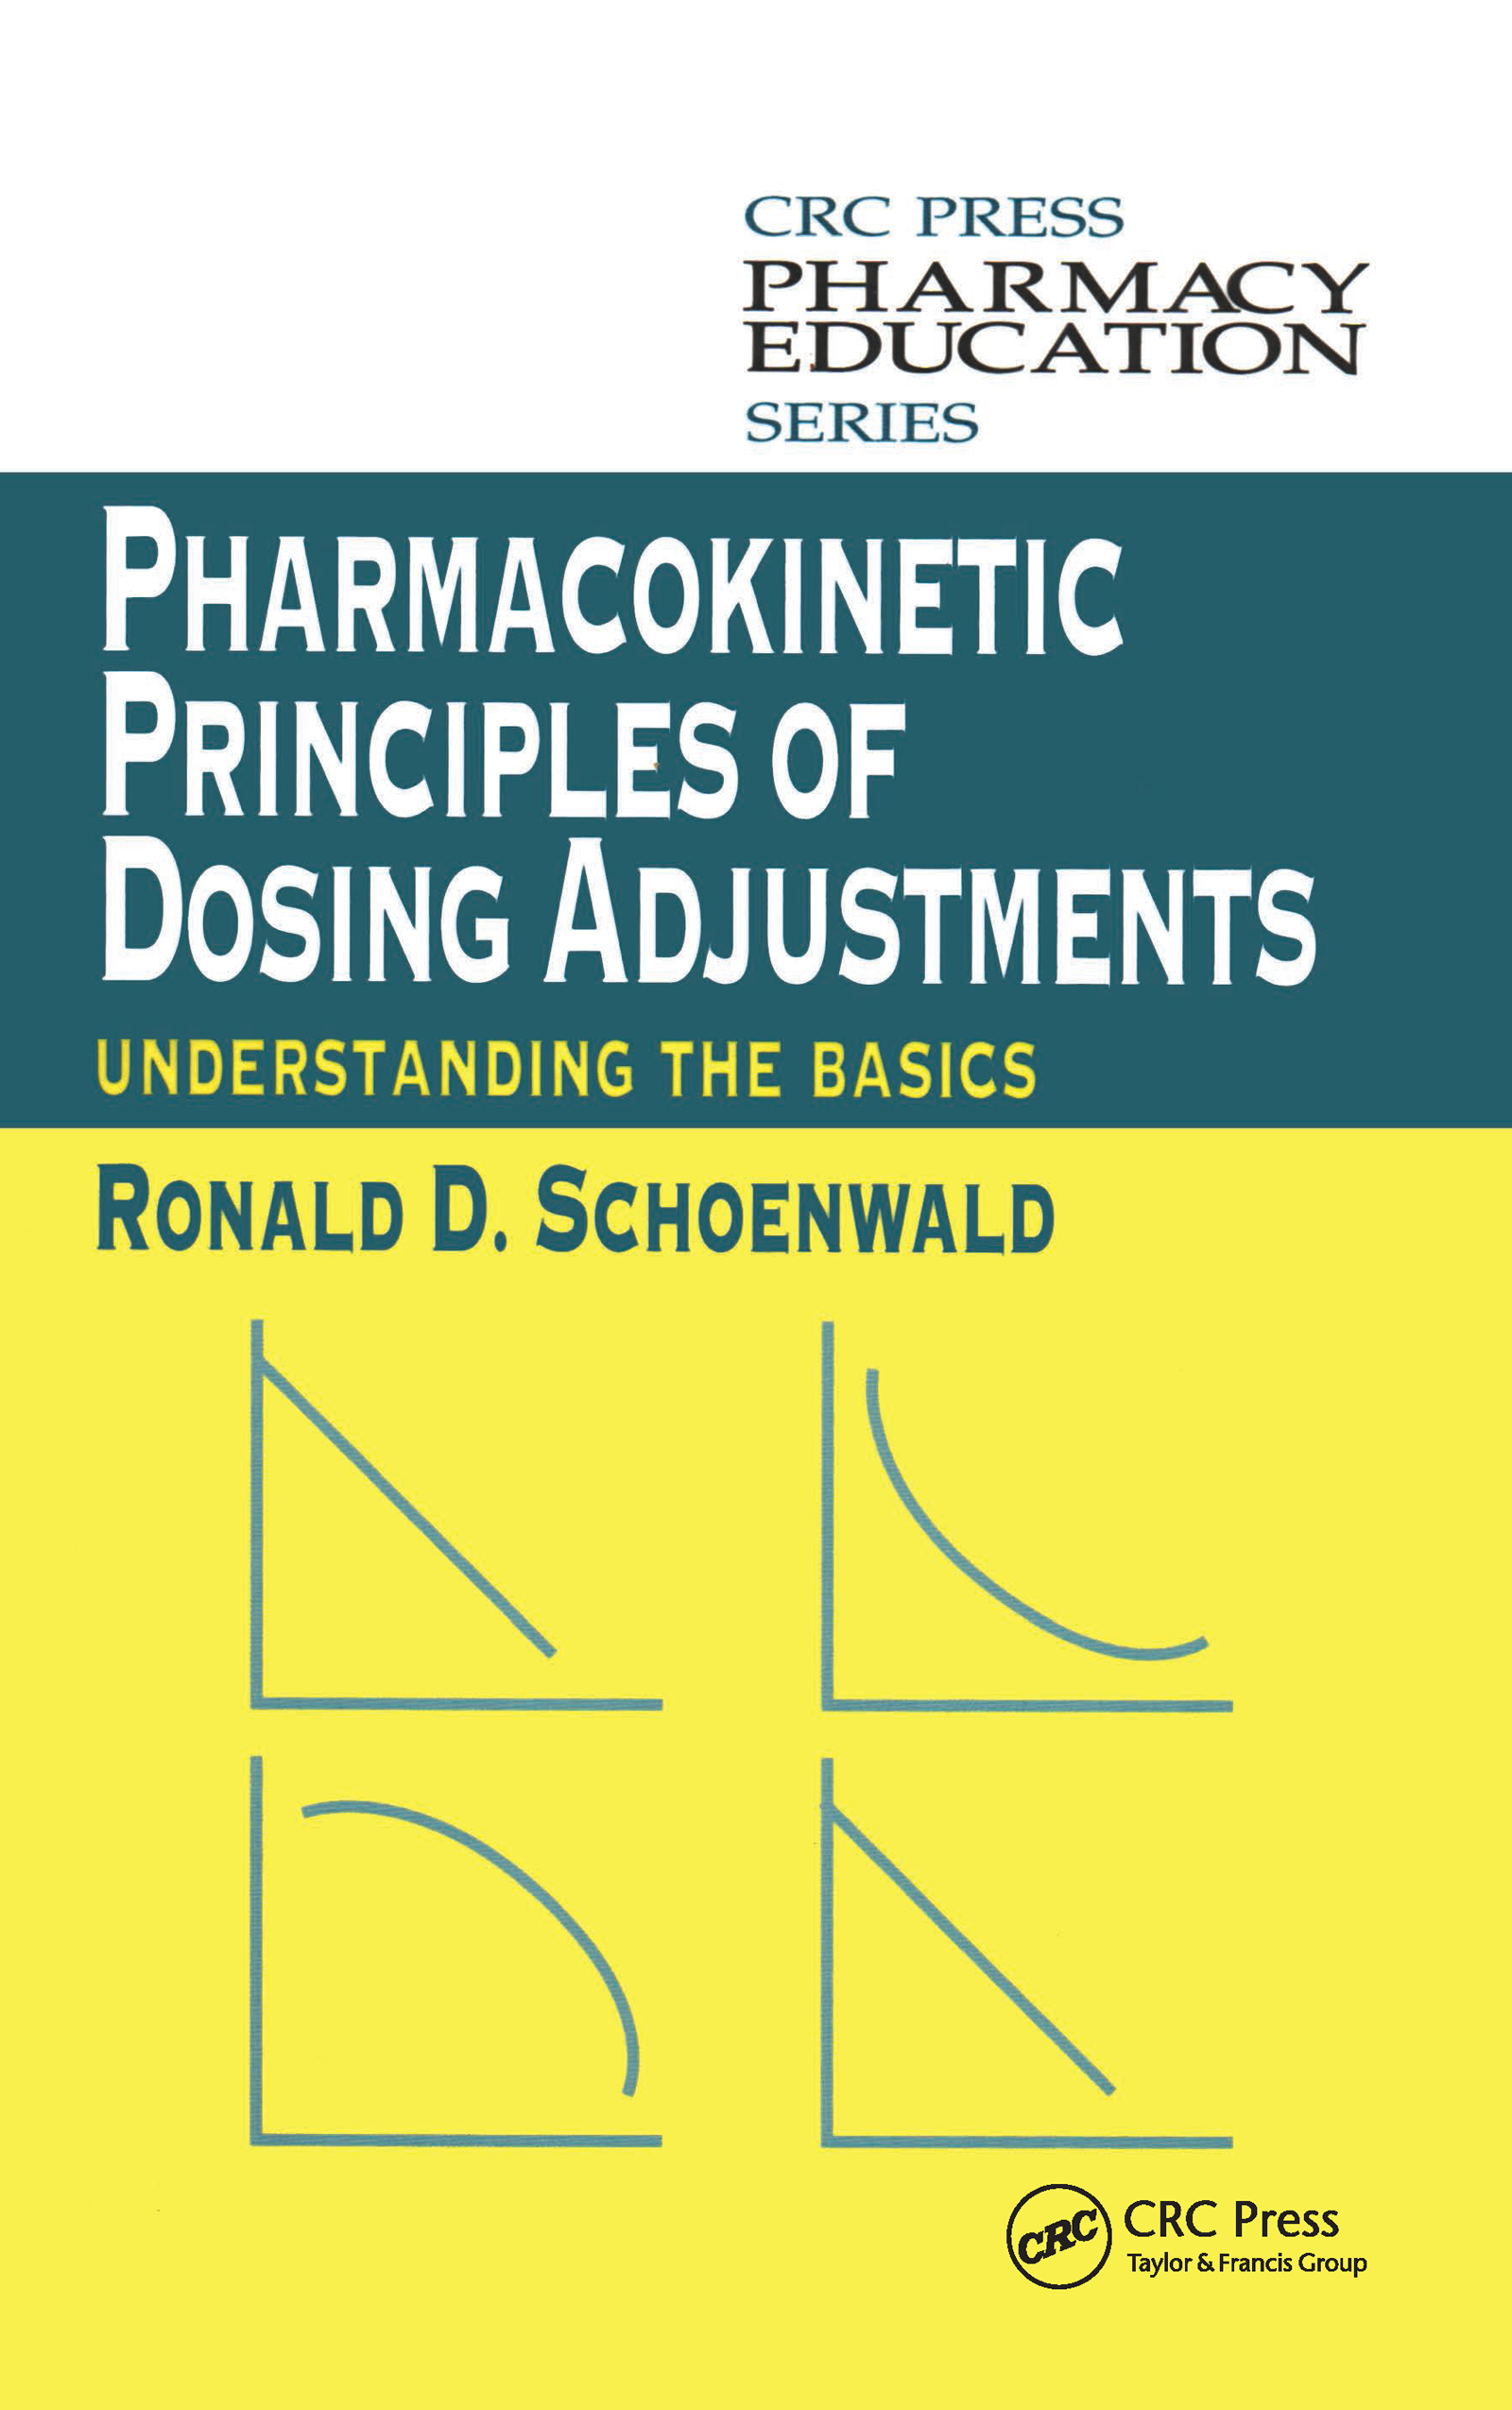 Pharmacokinetic Principles of Dosing Adjustments: Understanding the Basics book cover